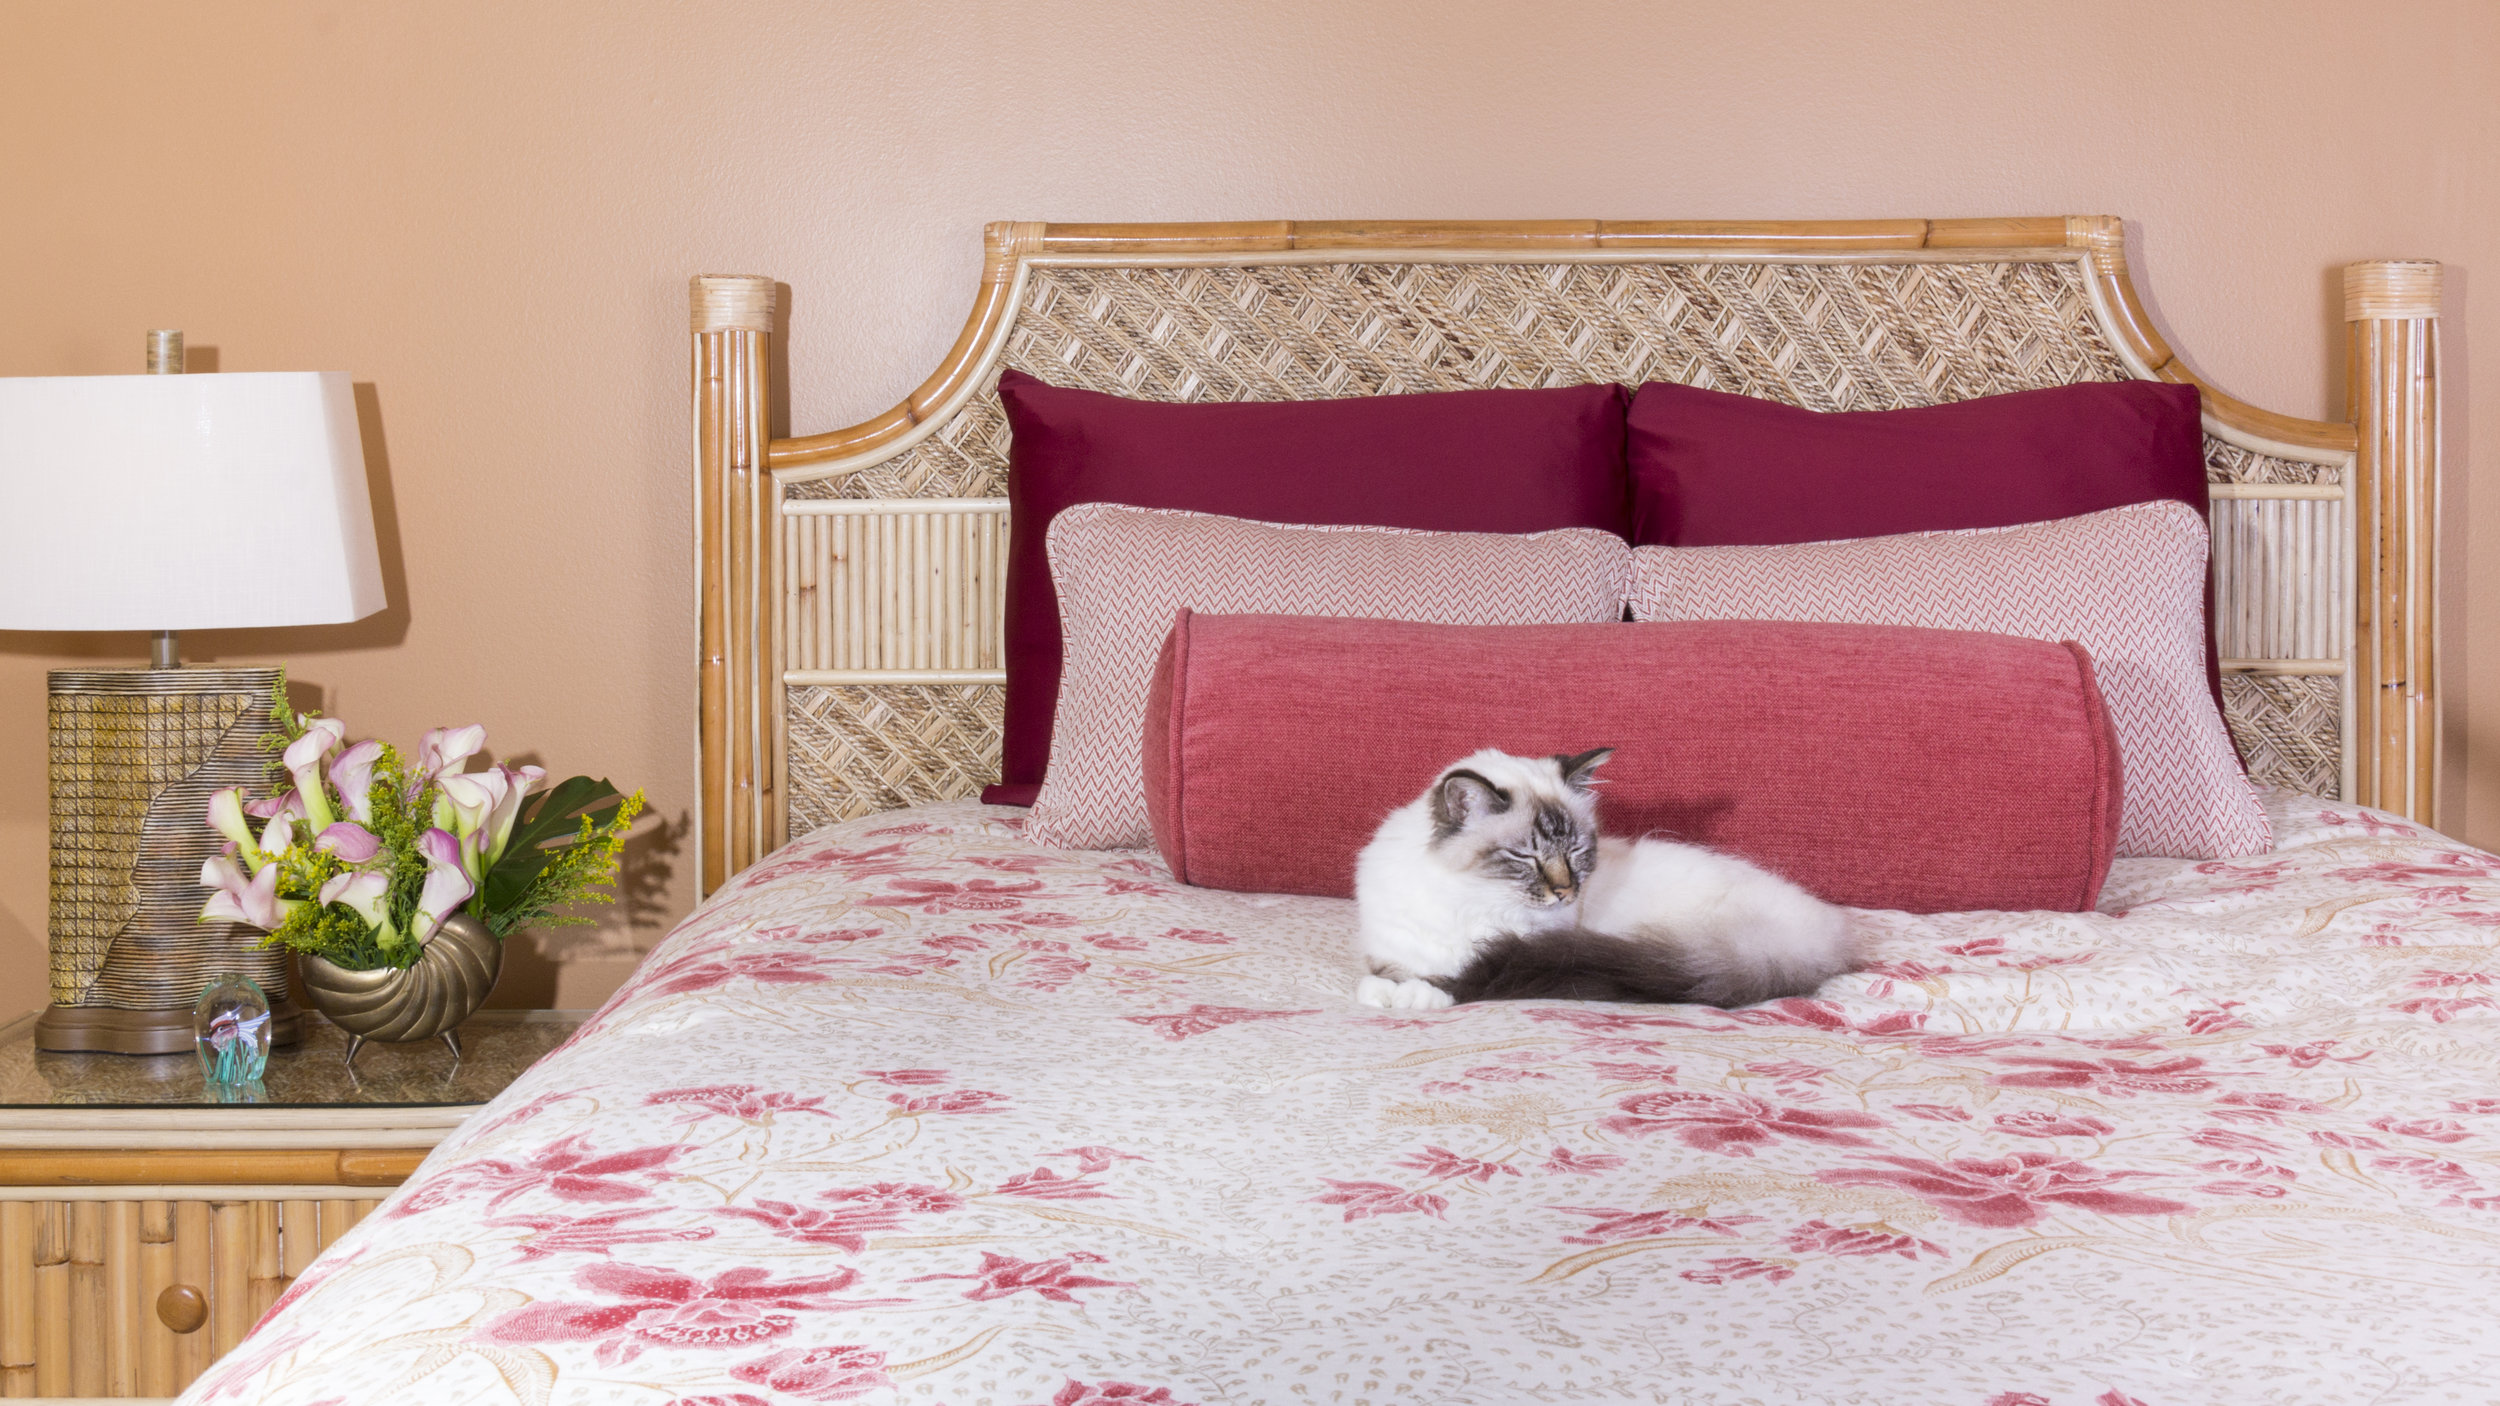 The family cat is the primary resident of this Manhattan Beach guest suite featuring a pink and coral color scheme.